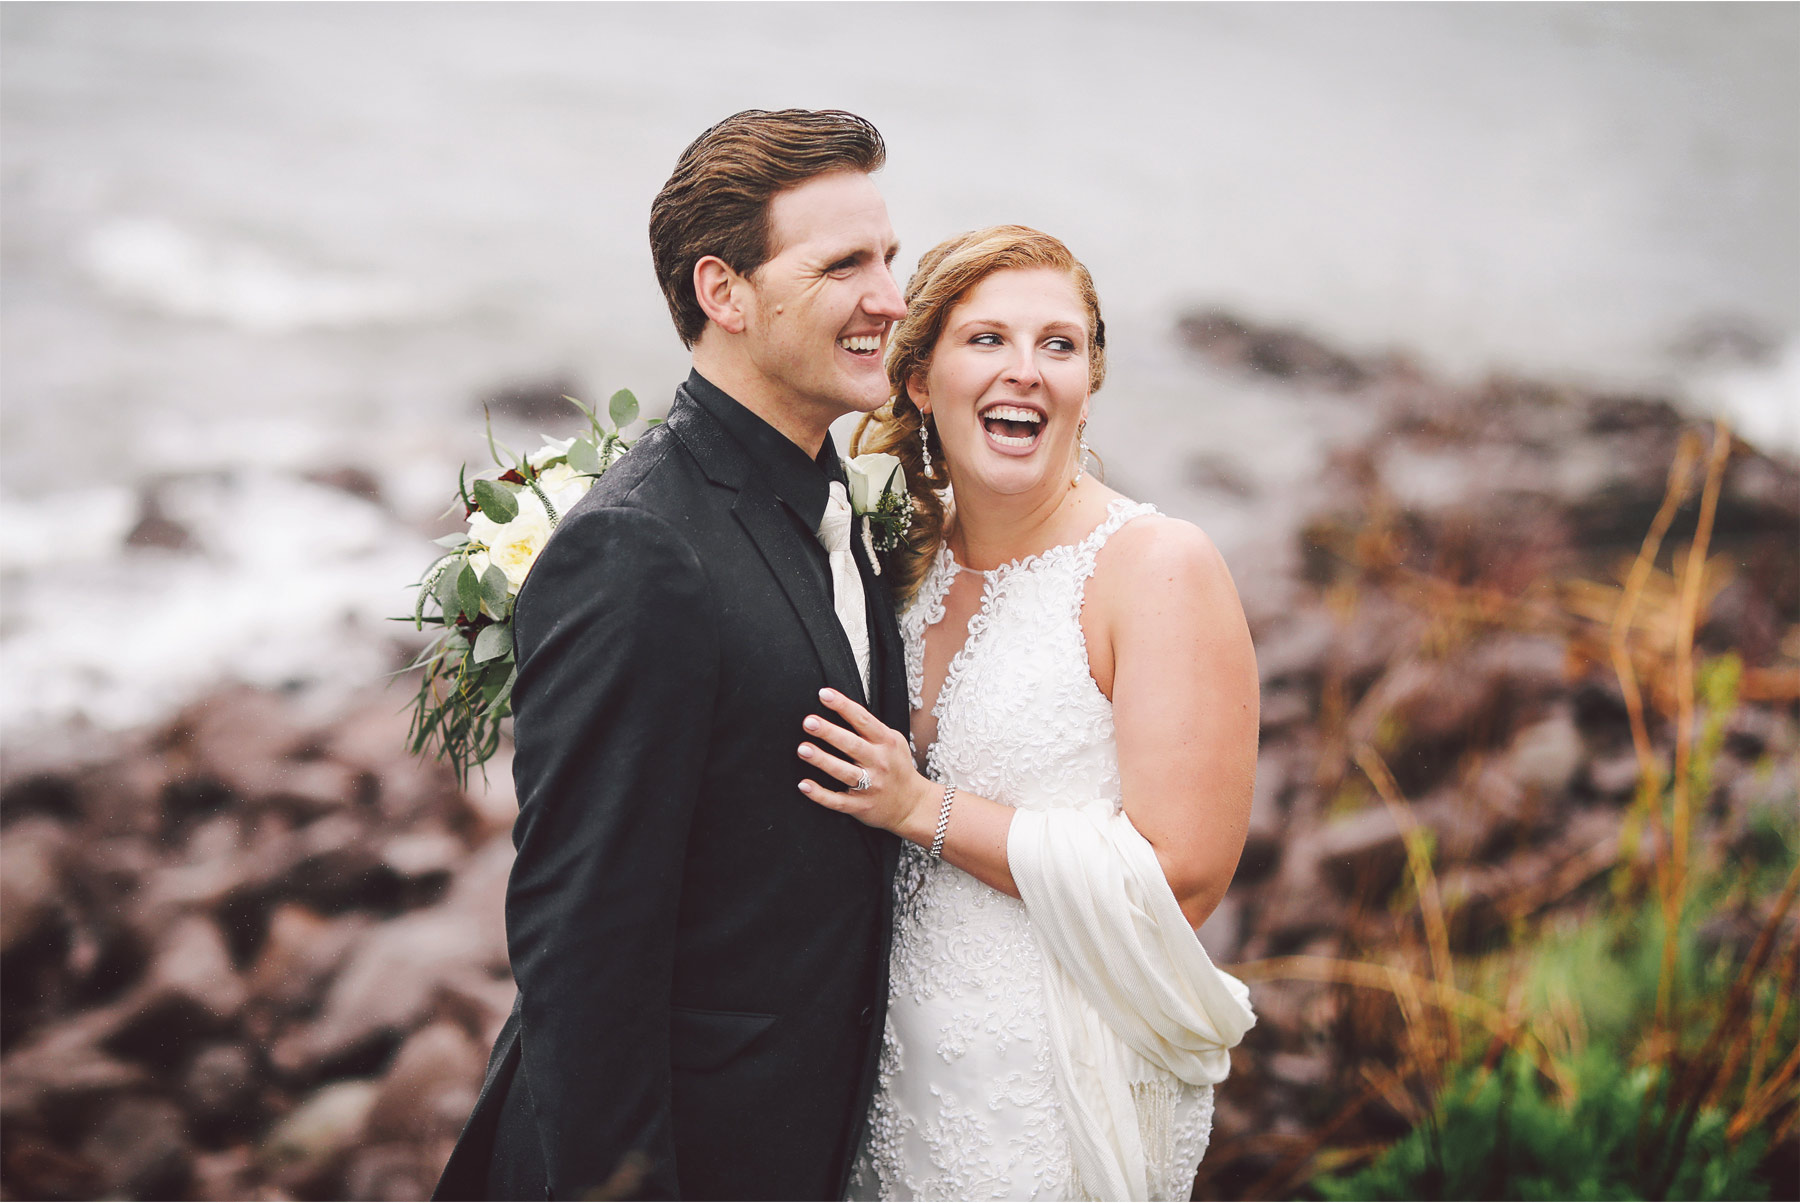 19-Minnesota-Wedding-by-Andrew-Vick-Photography-Grand-Superior-Lodge-Duluth-Two-Harbors-Lake-Superior-Rain-Bride-Groom-Laughing-Veronica-and-Tyler.jpg